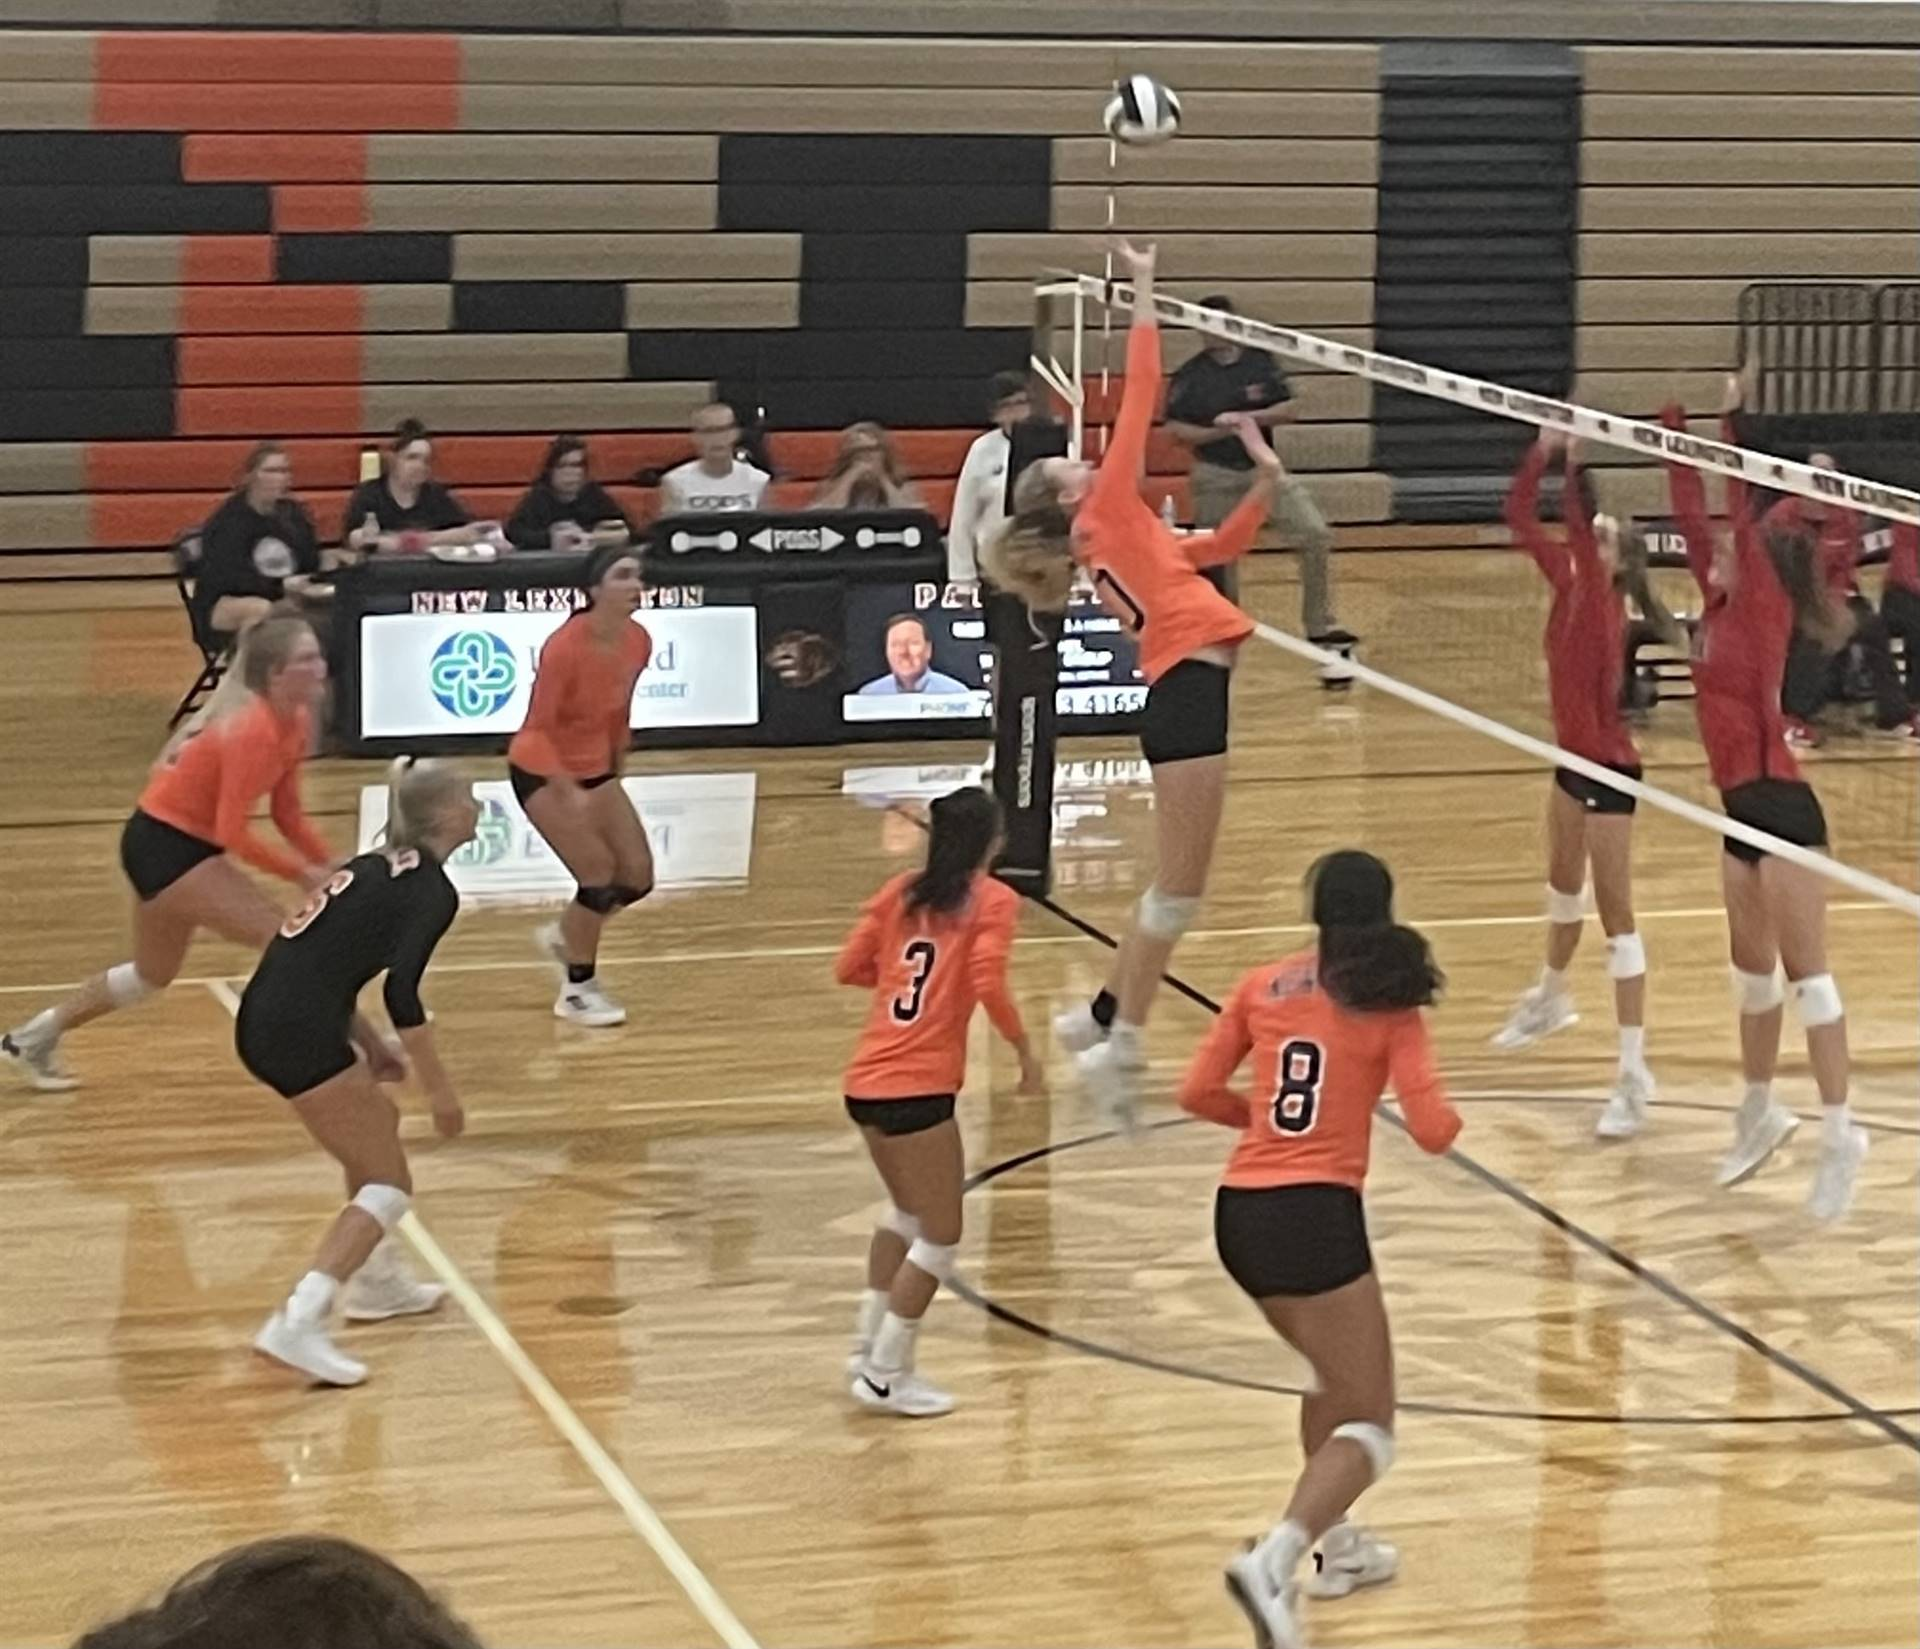 JV Volleyball Taking on Alexander at Home